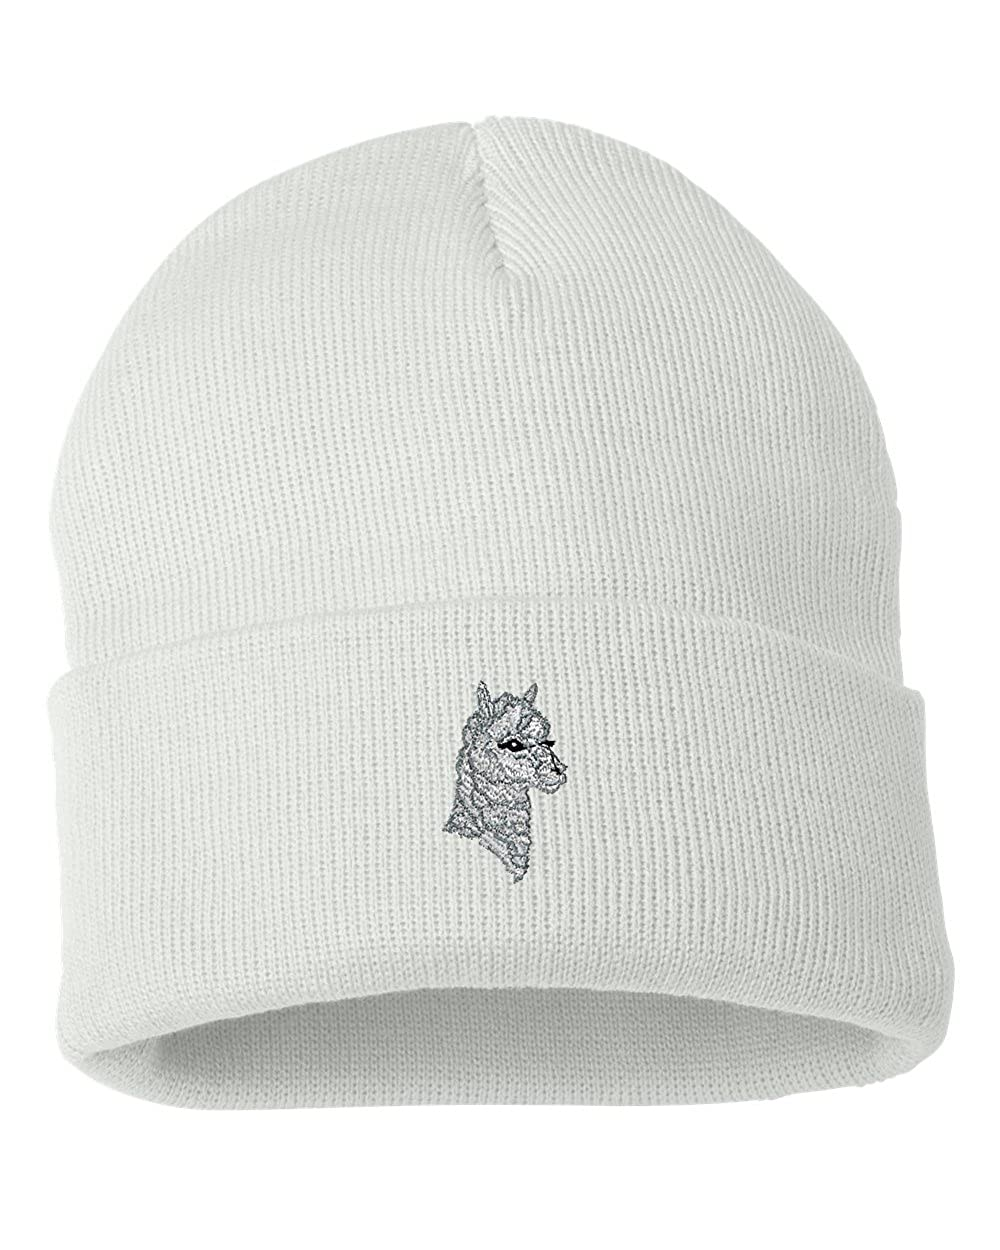 Alpaca Custom Personalized Embroidery Embroidered Beanie